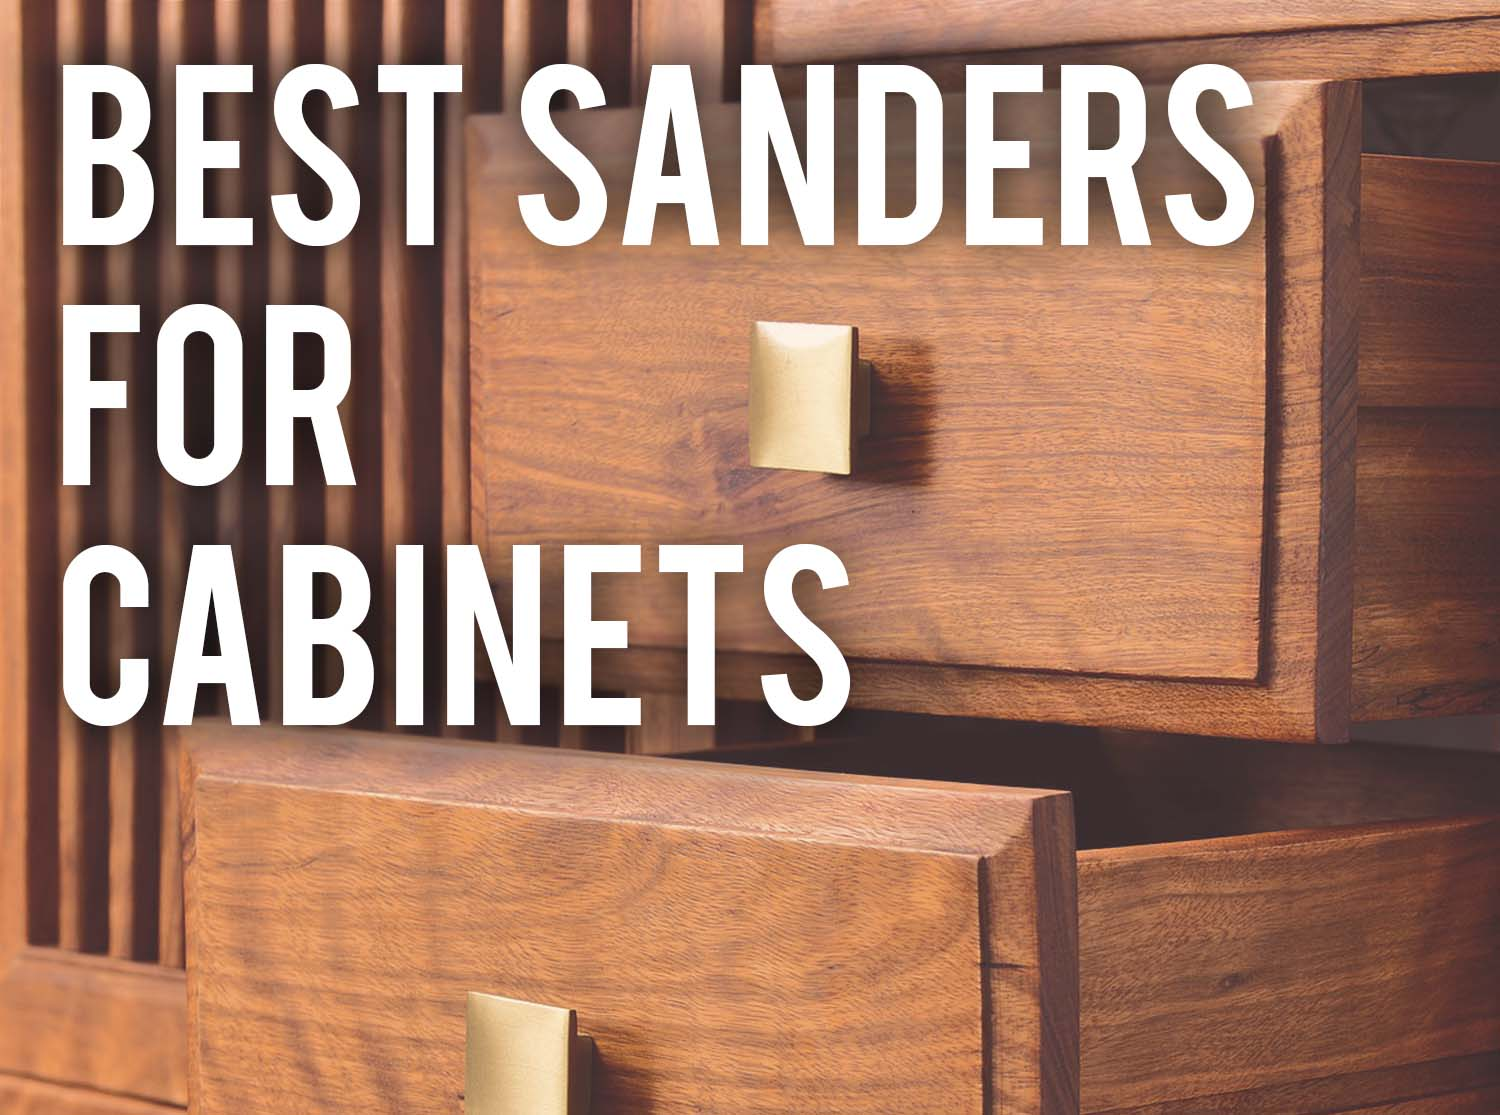 Best Sanders For Cabinets 2020 Guide